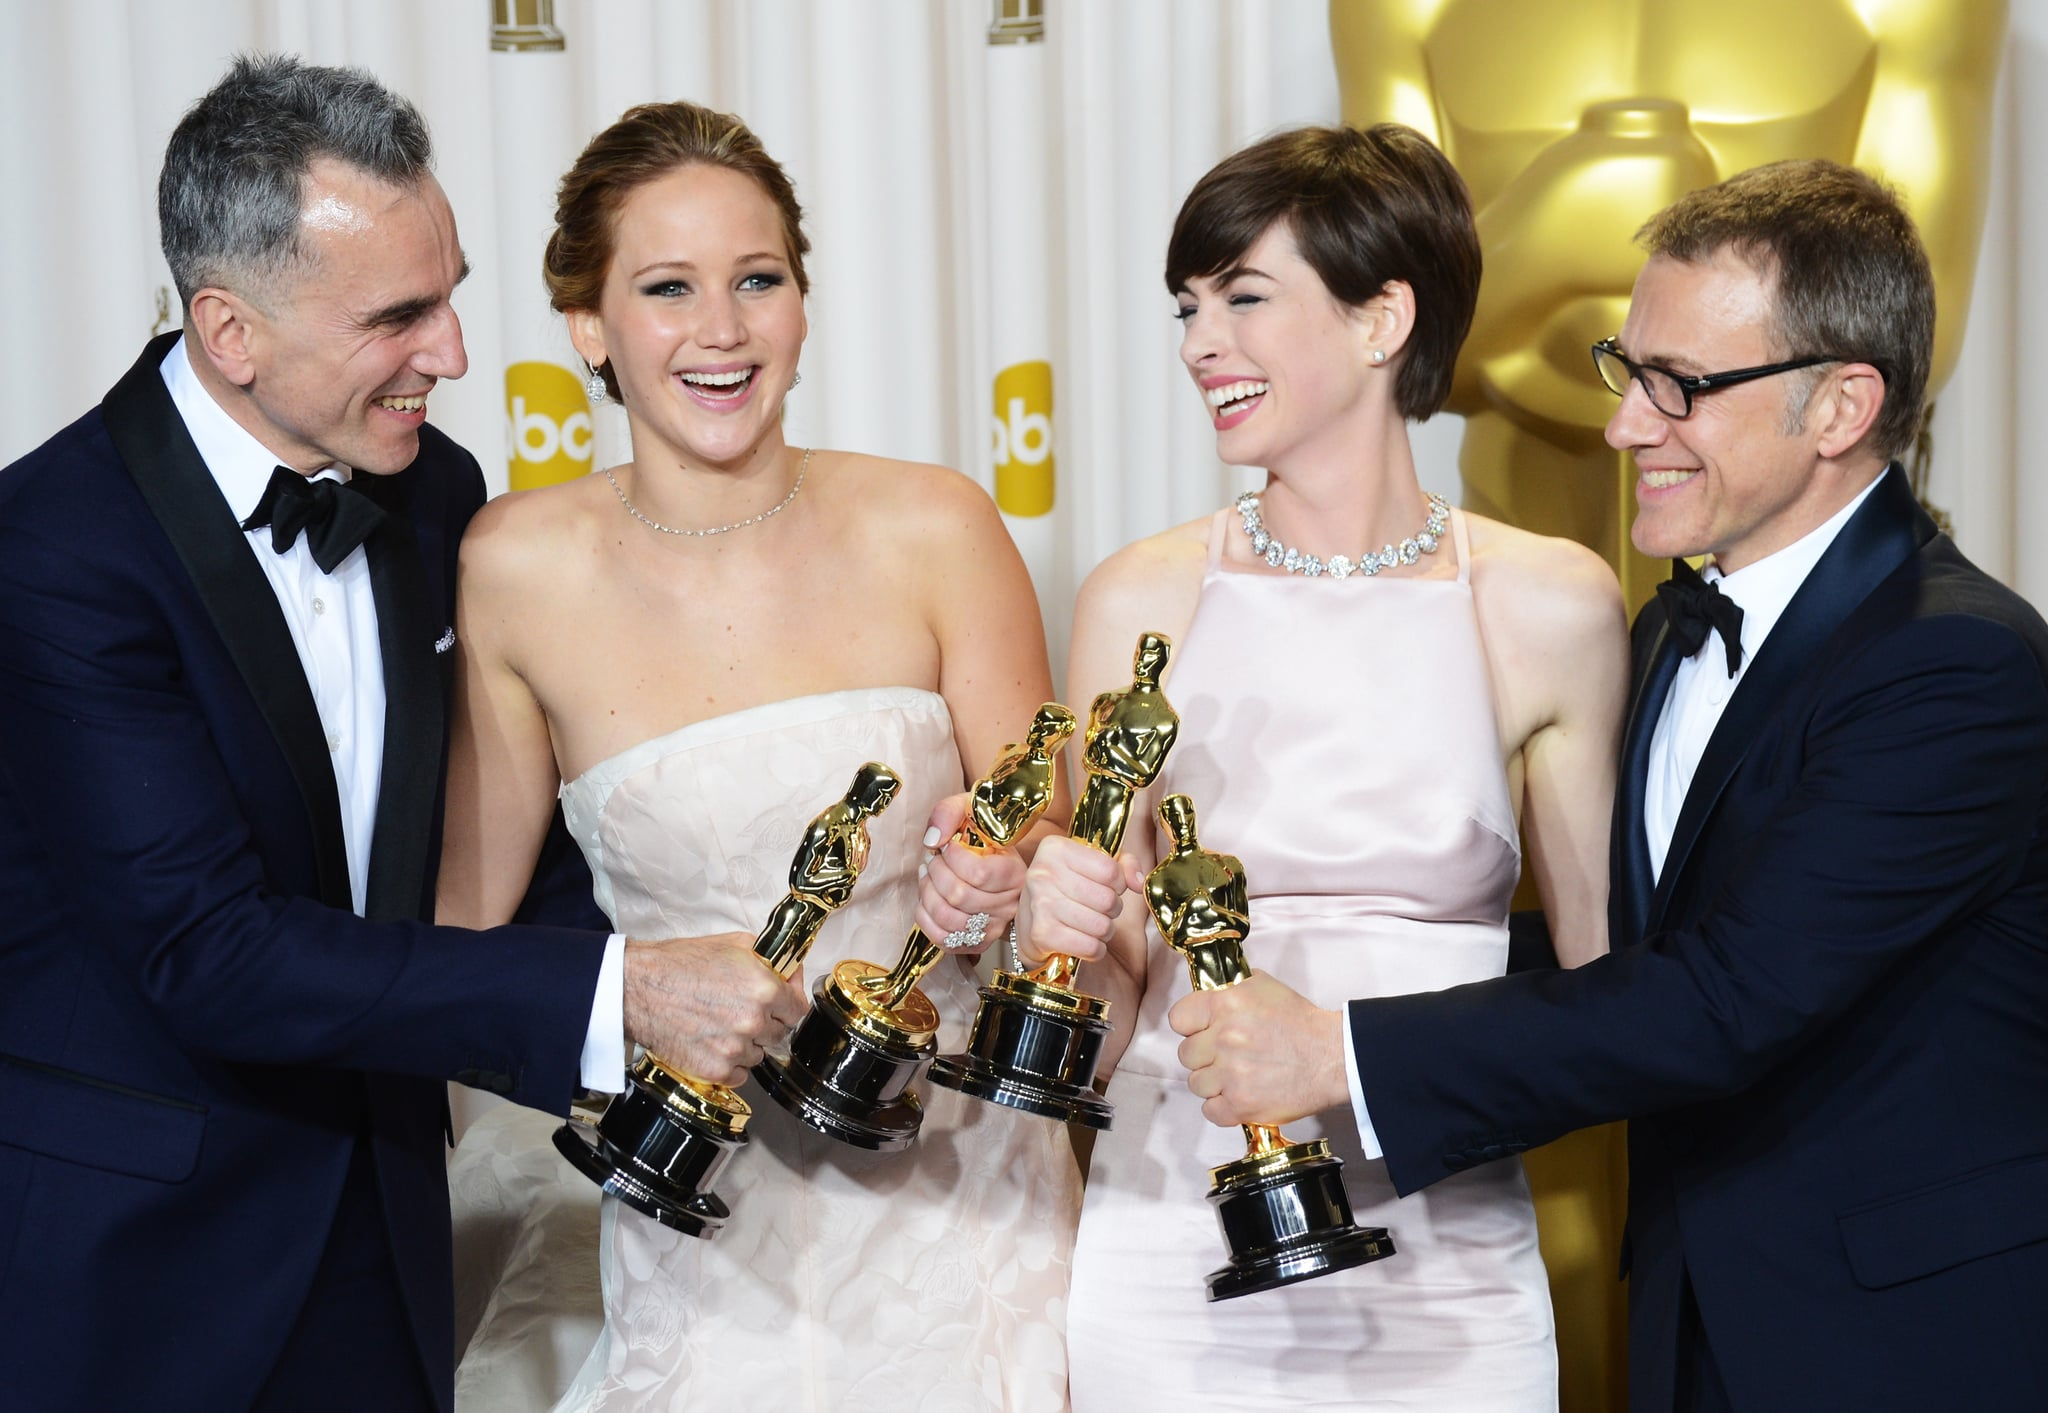 Daniel Day-Lewis, Jennifer Lawrence, Anne Hathaway, and Christoph Waltz backstage at the Oscars 2013.